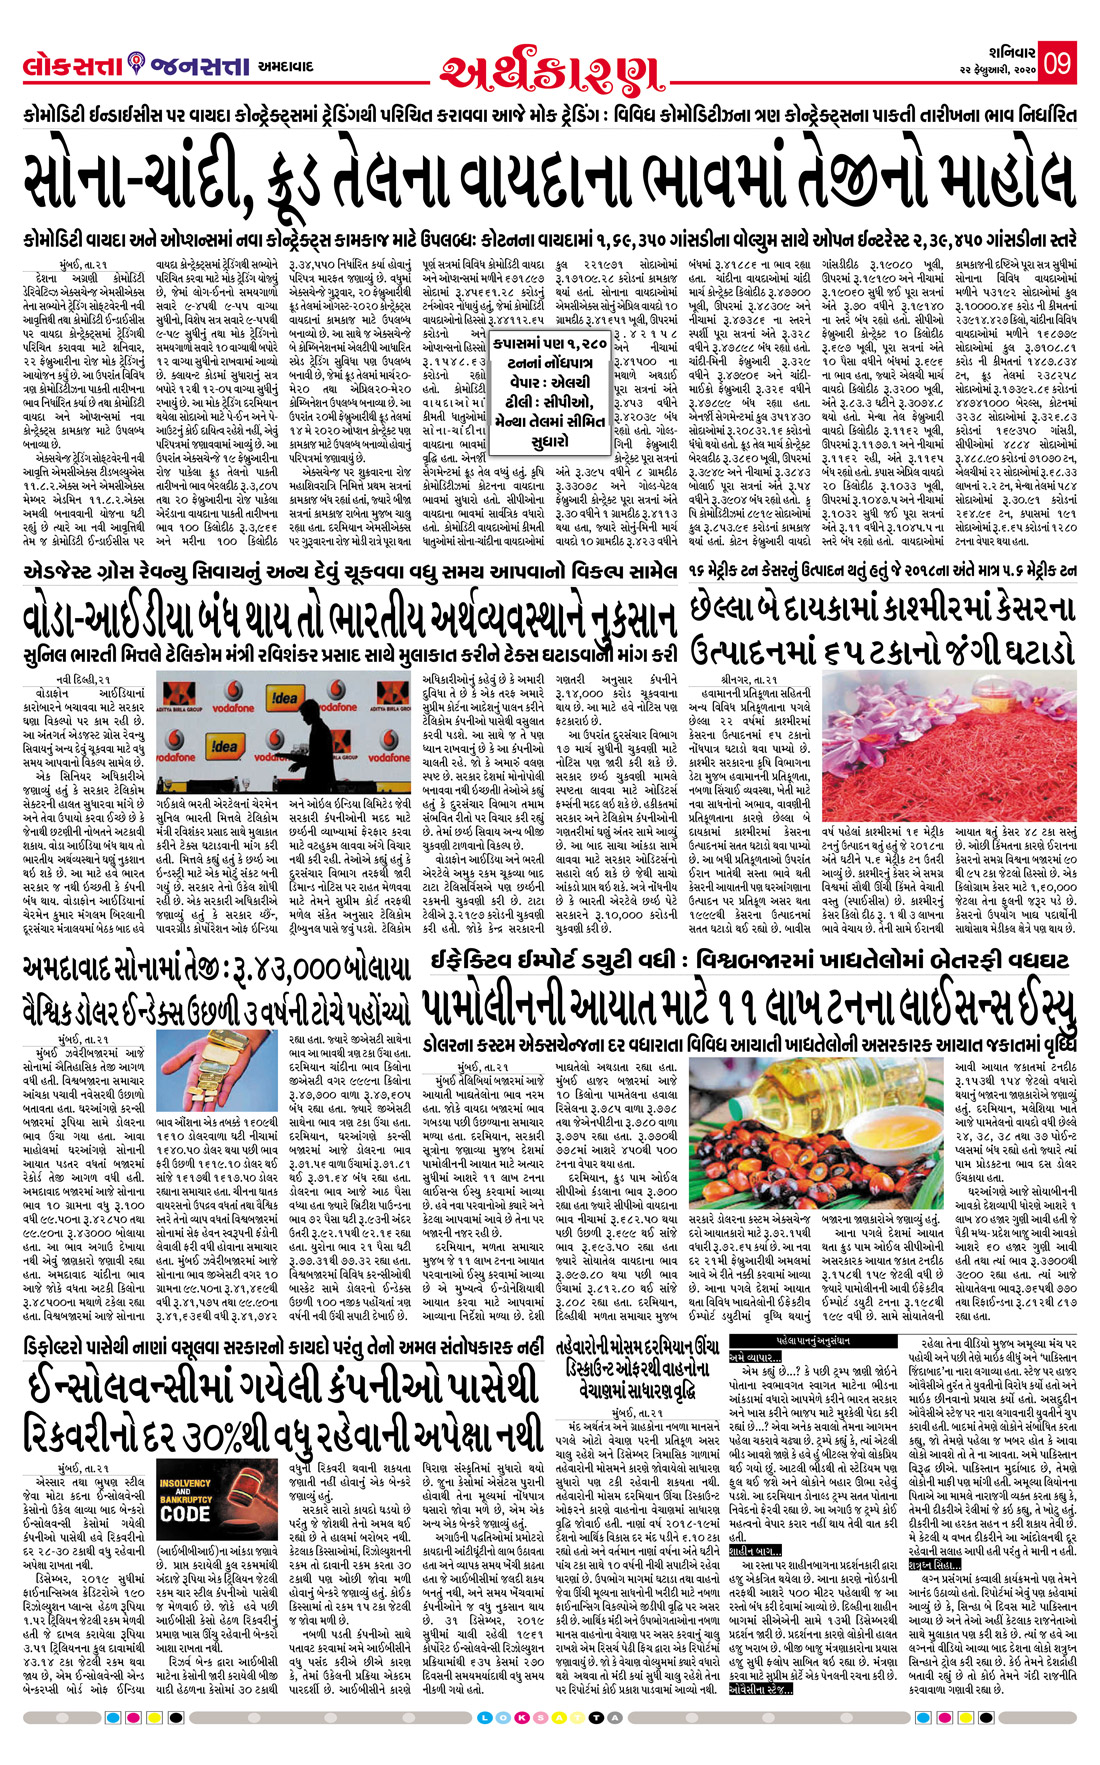 Loksatta Jansatta News Papaer E-paper dated 2020-02-22 | Page 9